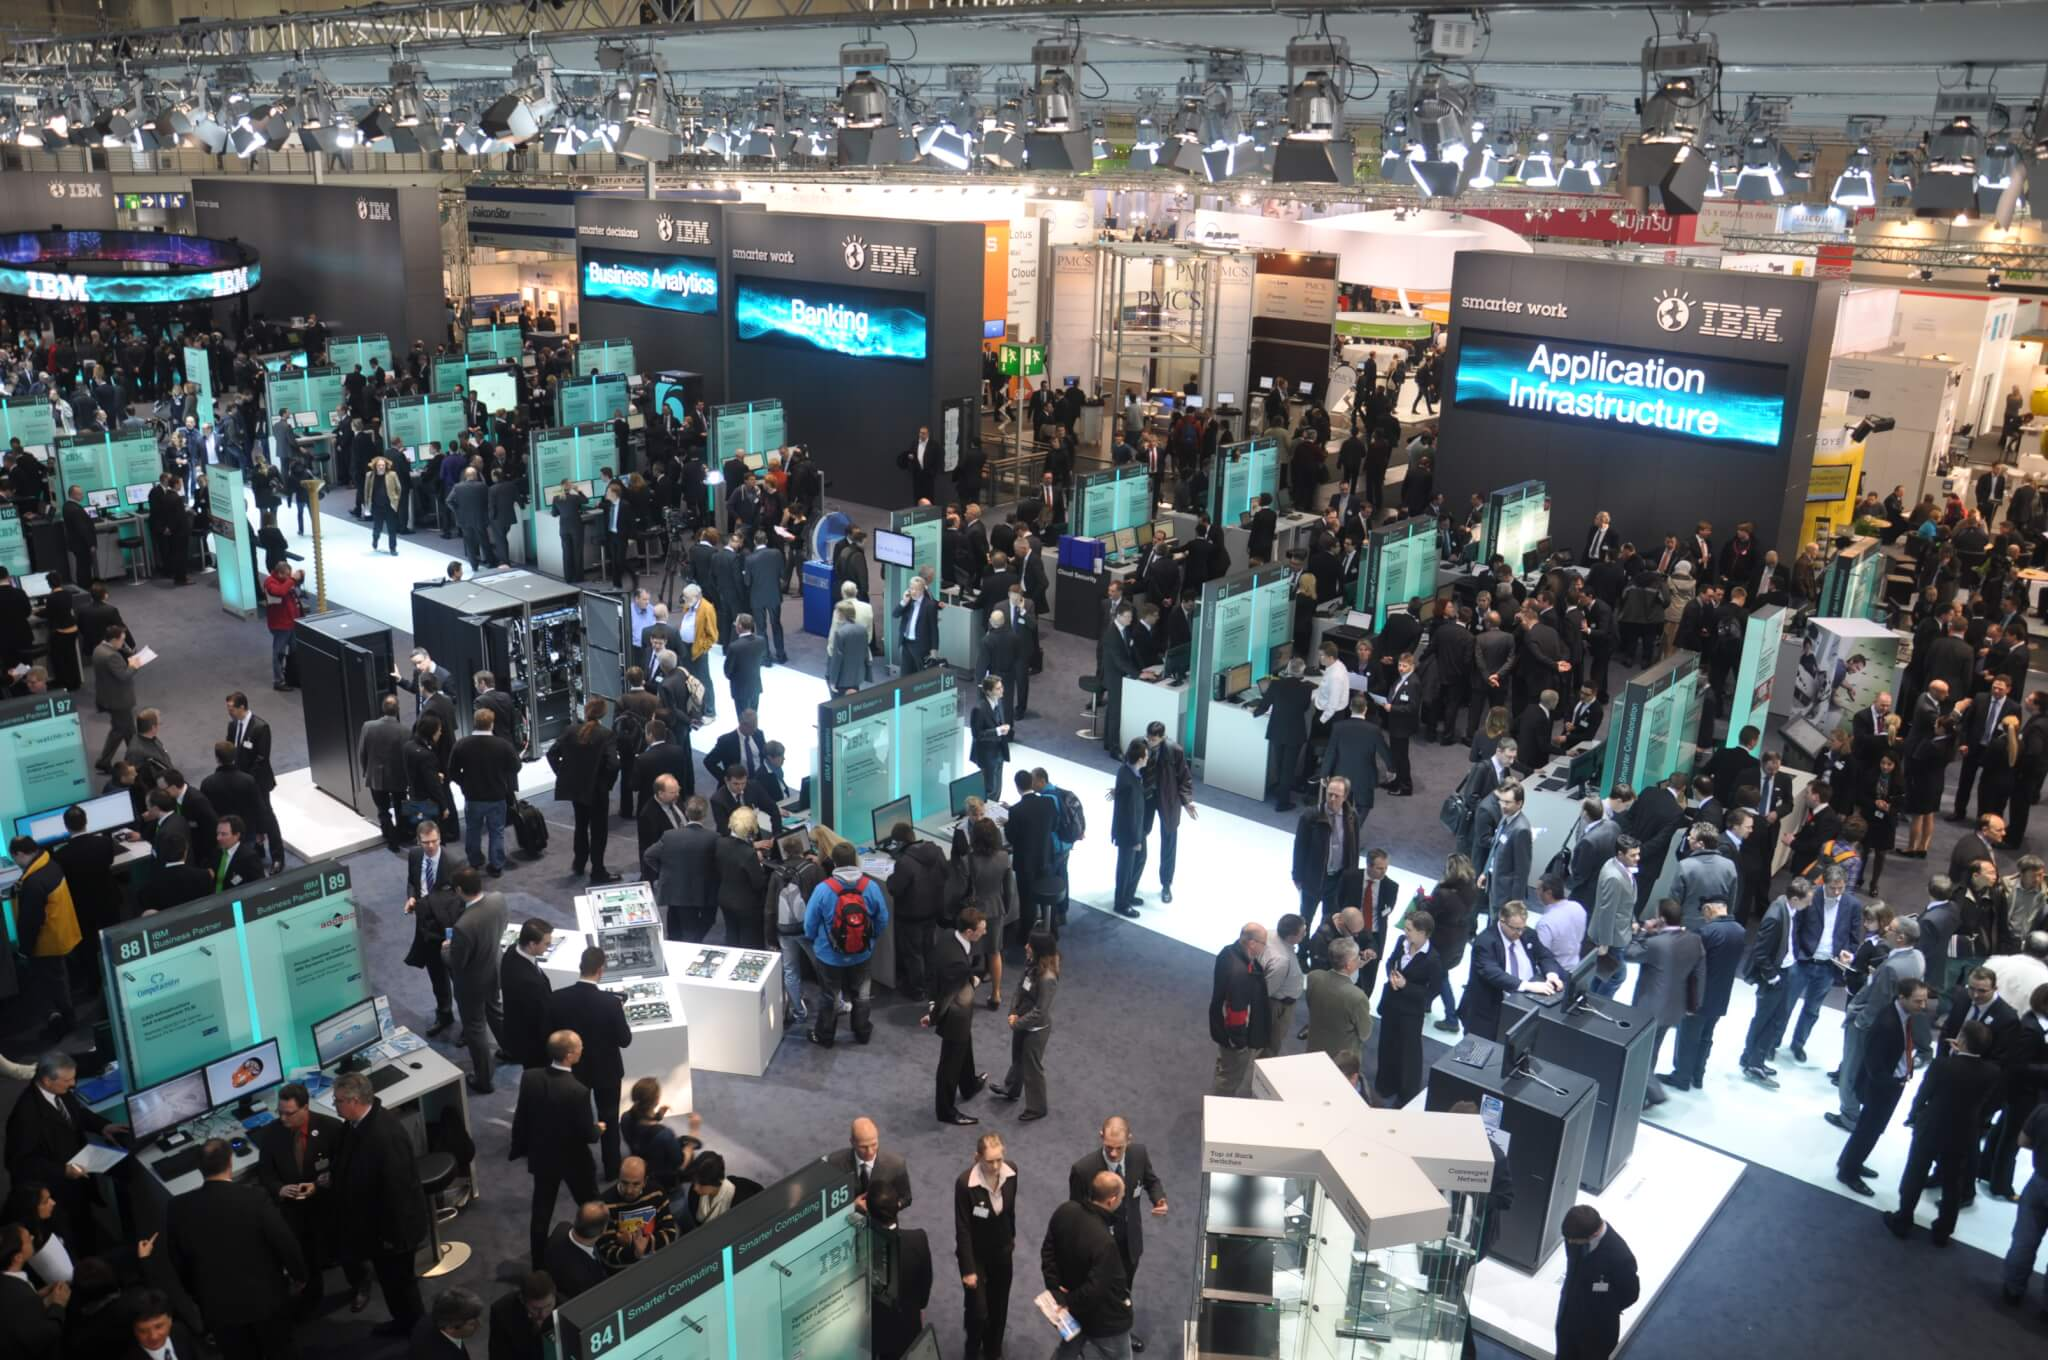 One Of The World's Largest IT Trade Show – Cebit – is Being